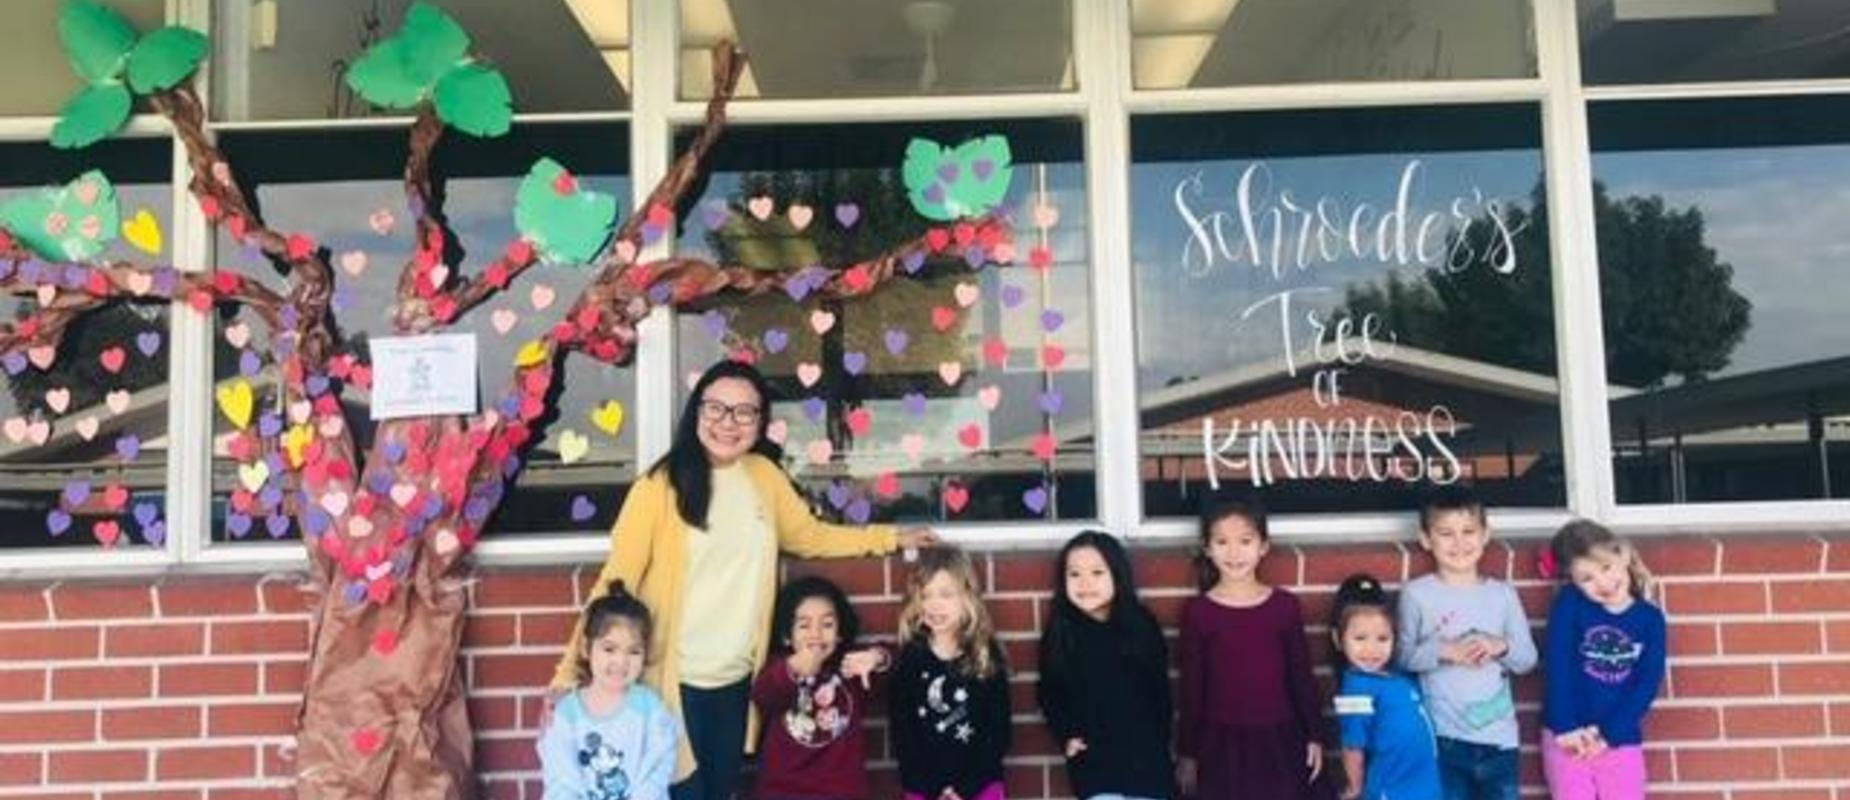 students stand in front of Tree of Kindness